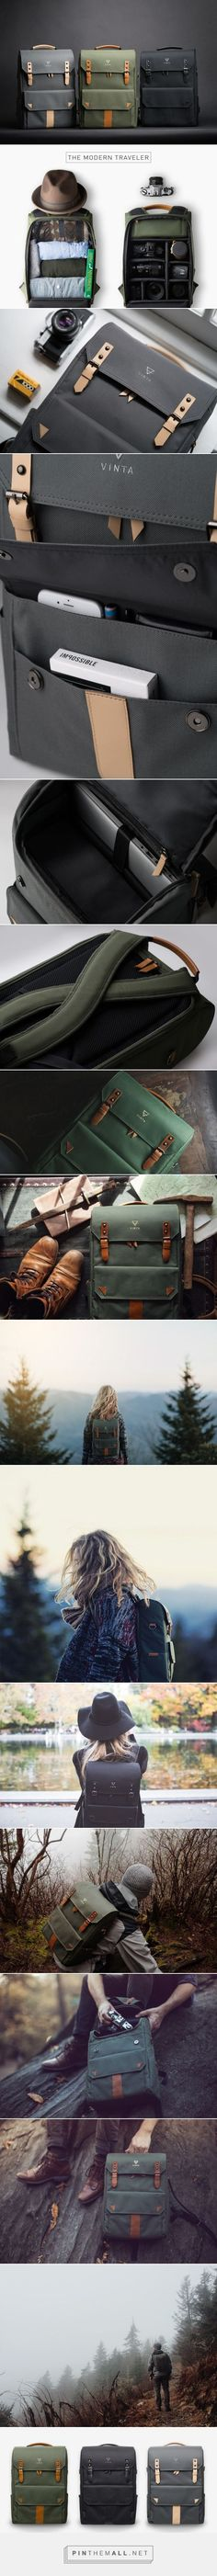 A Travel & Camera Bag for Everyday Adventures - Design Milk